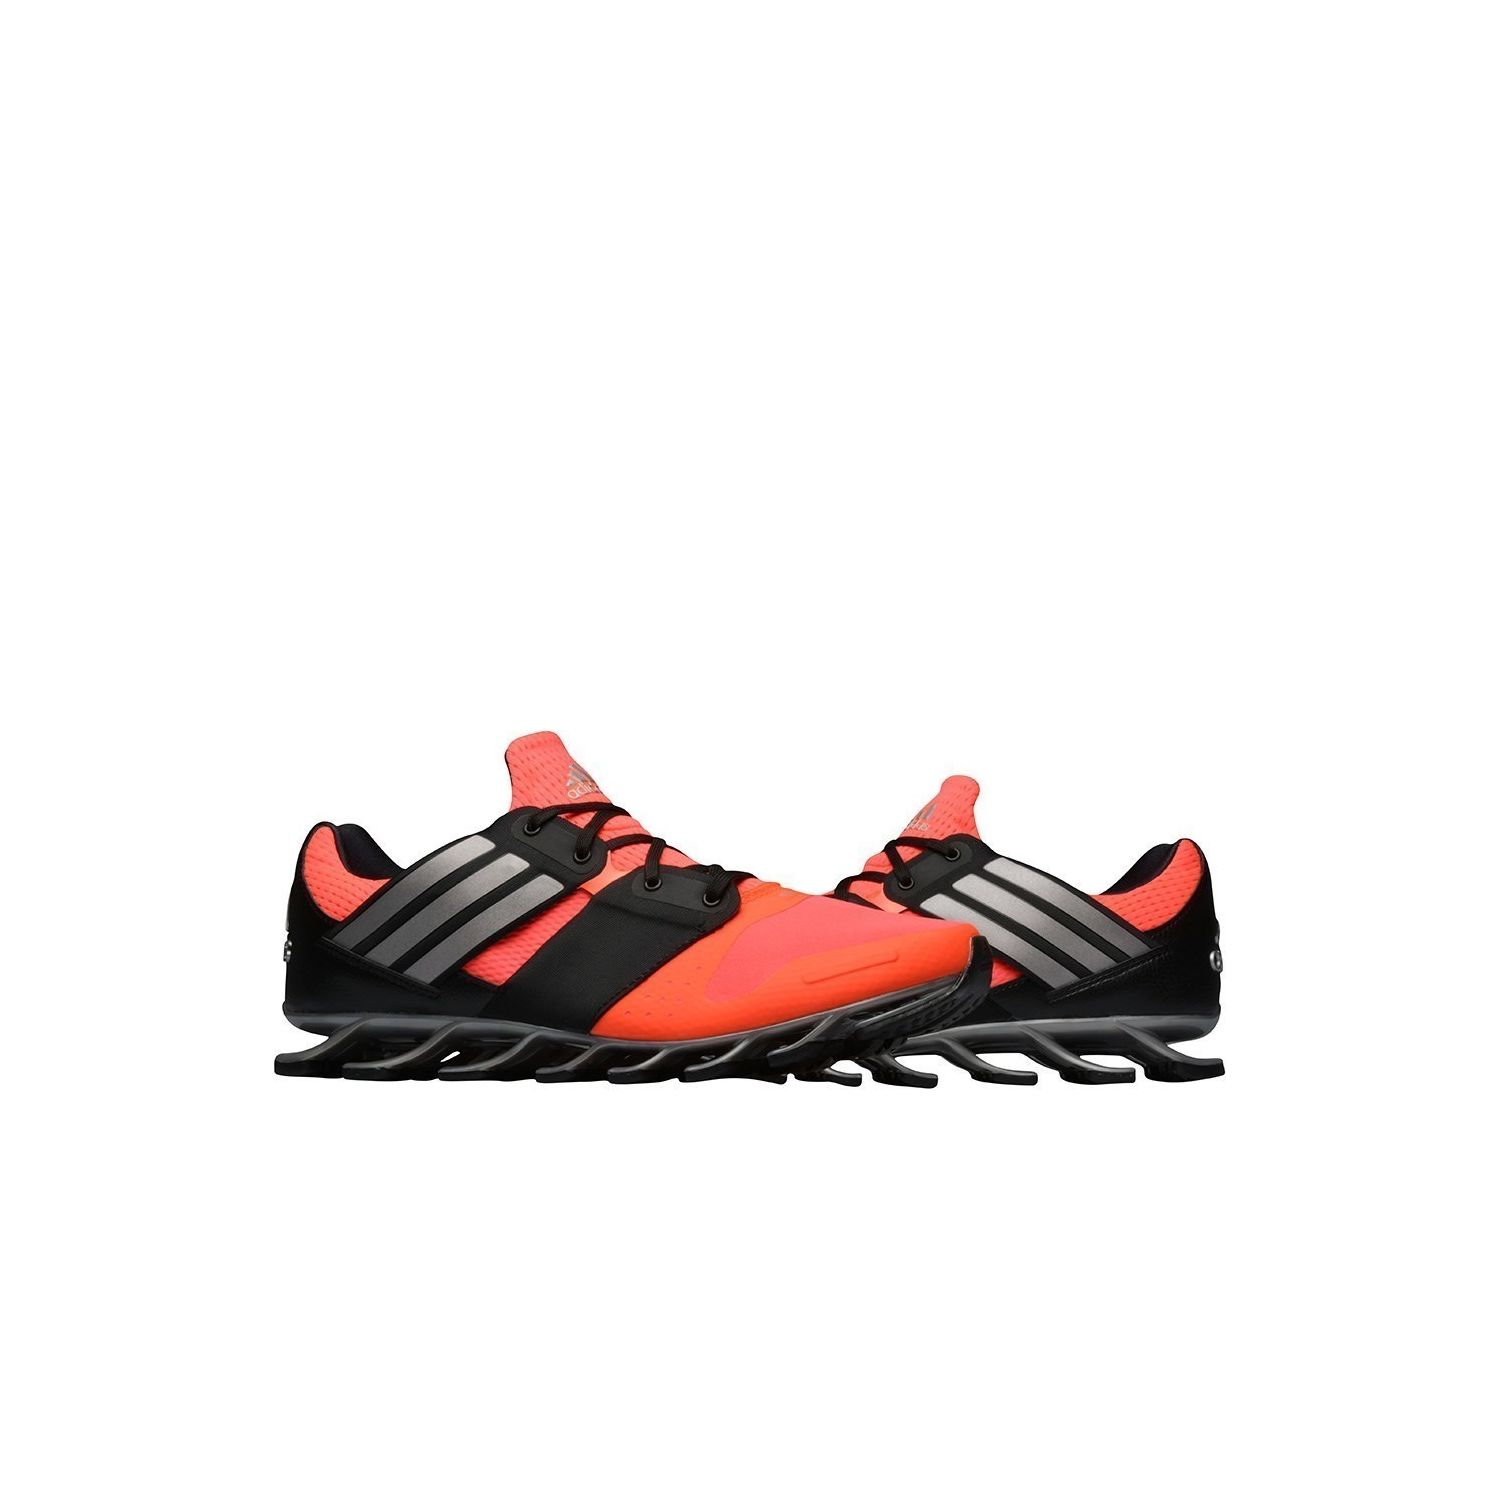 Rouge Springblade Solyce pas Achat Adidas cher Achat Solyce zC6Fycqt